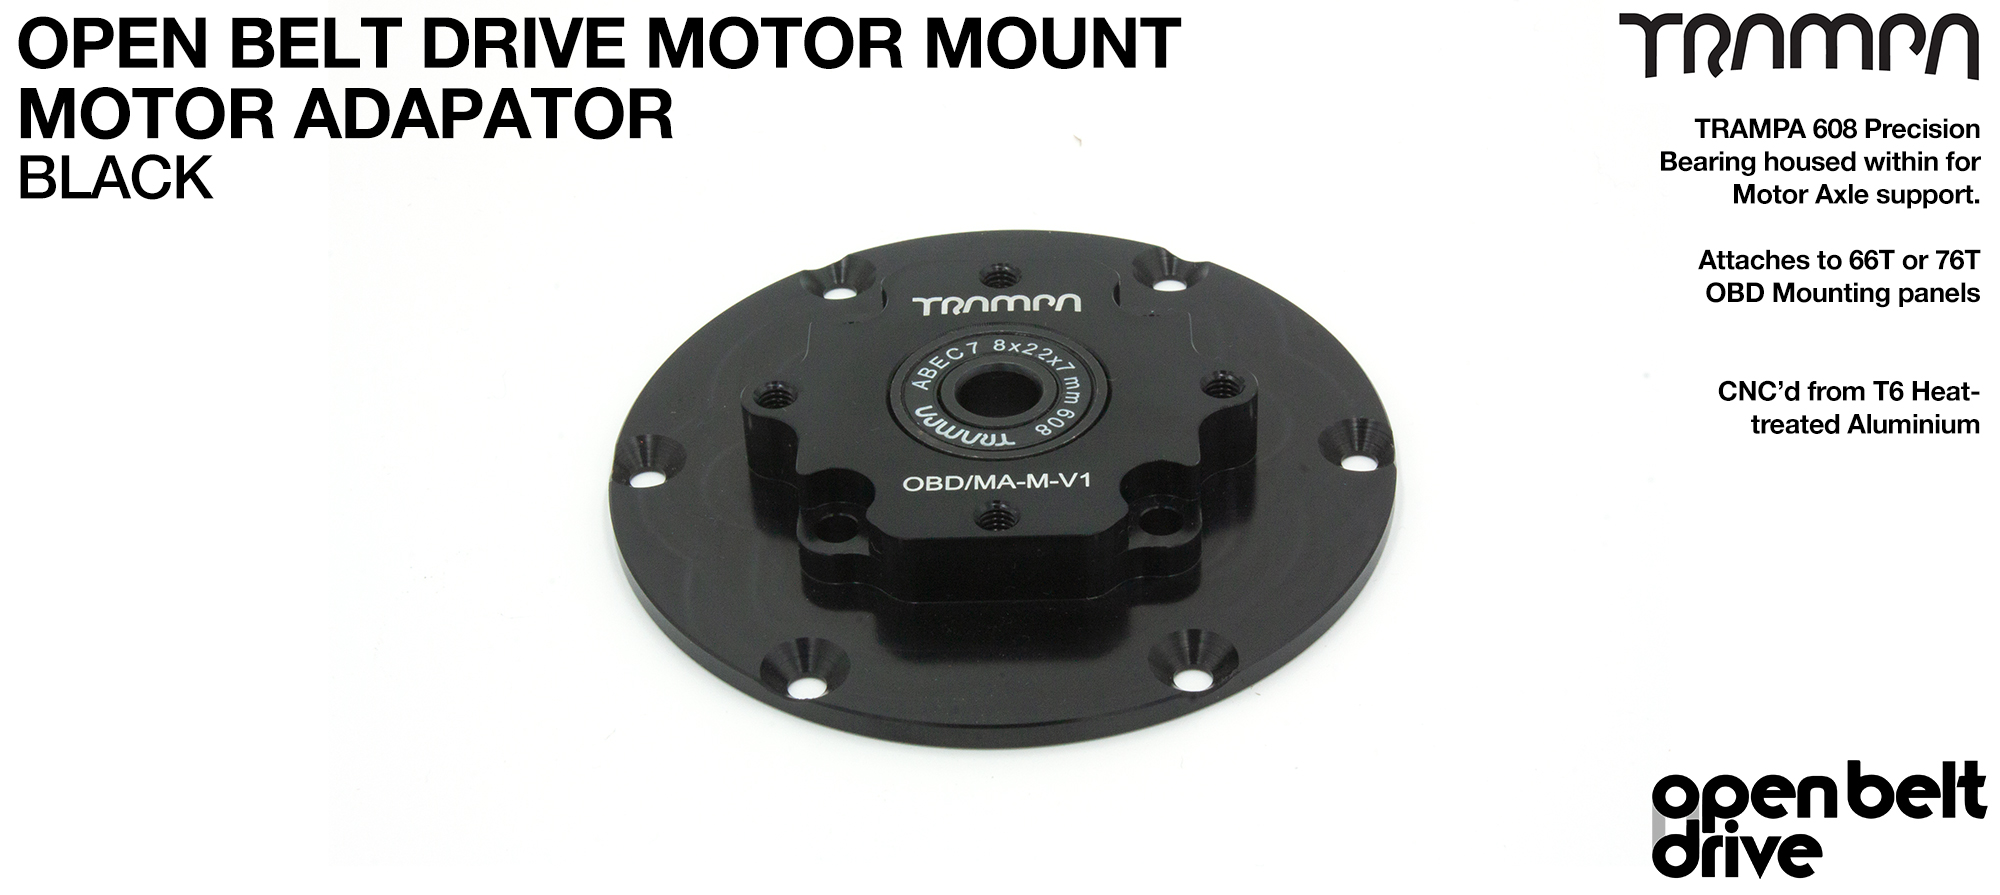 BLACK OBD Motor Adaptor with Housed Bearing